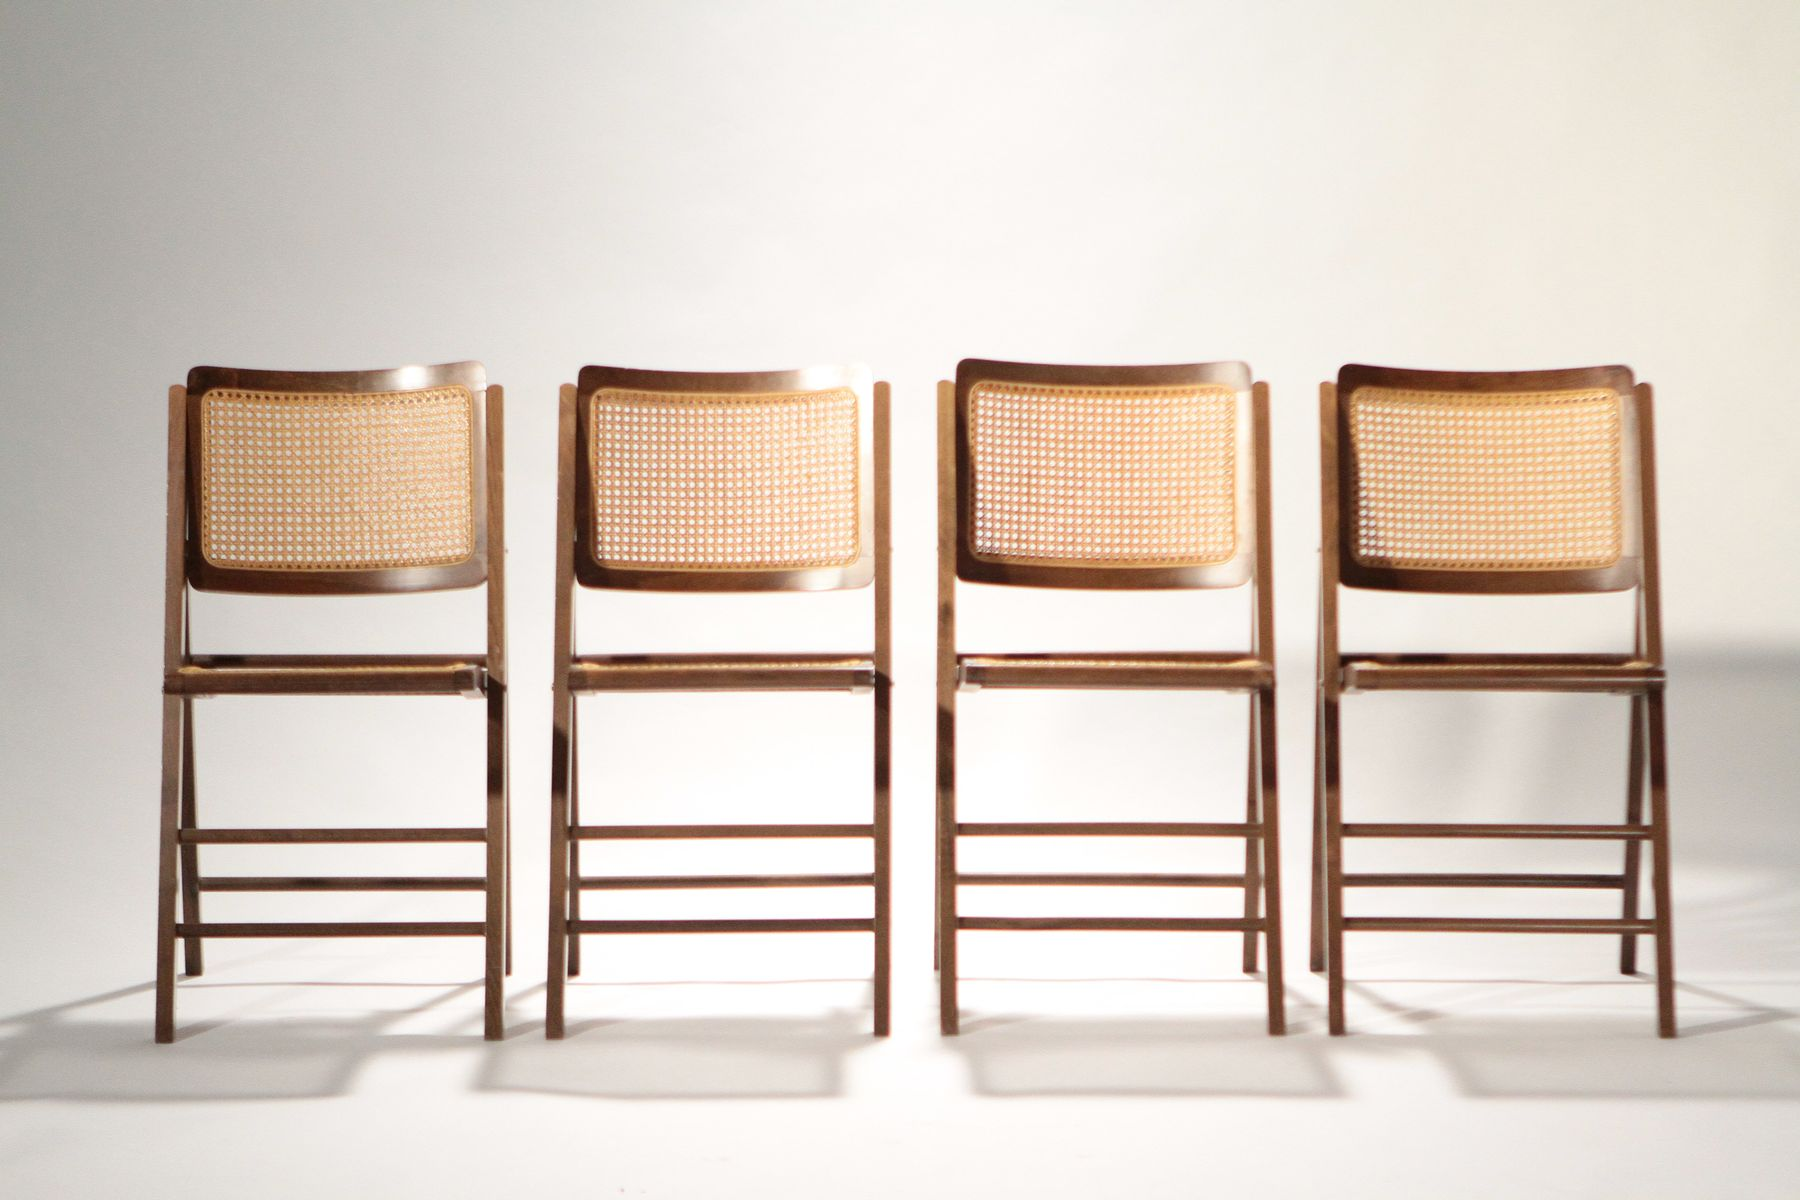 Folding Cane Chairs 1950s Set Of 4 For Sale At Pamono